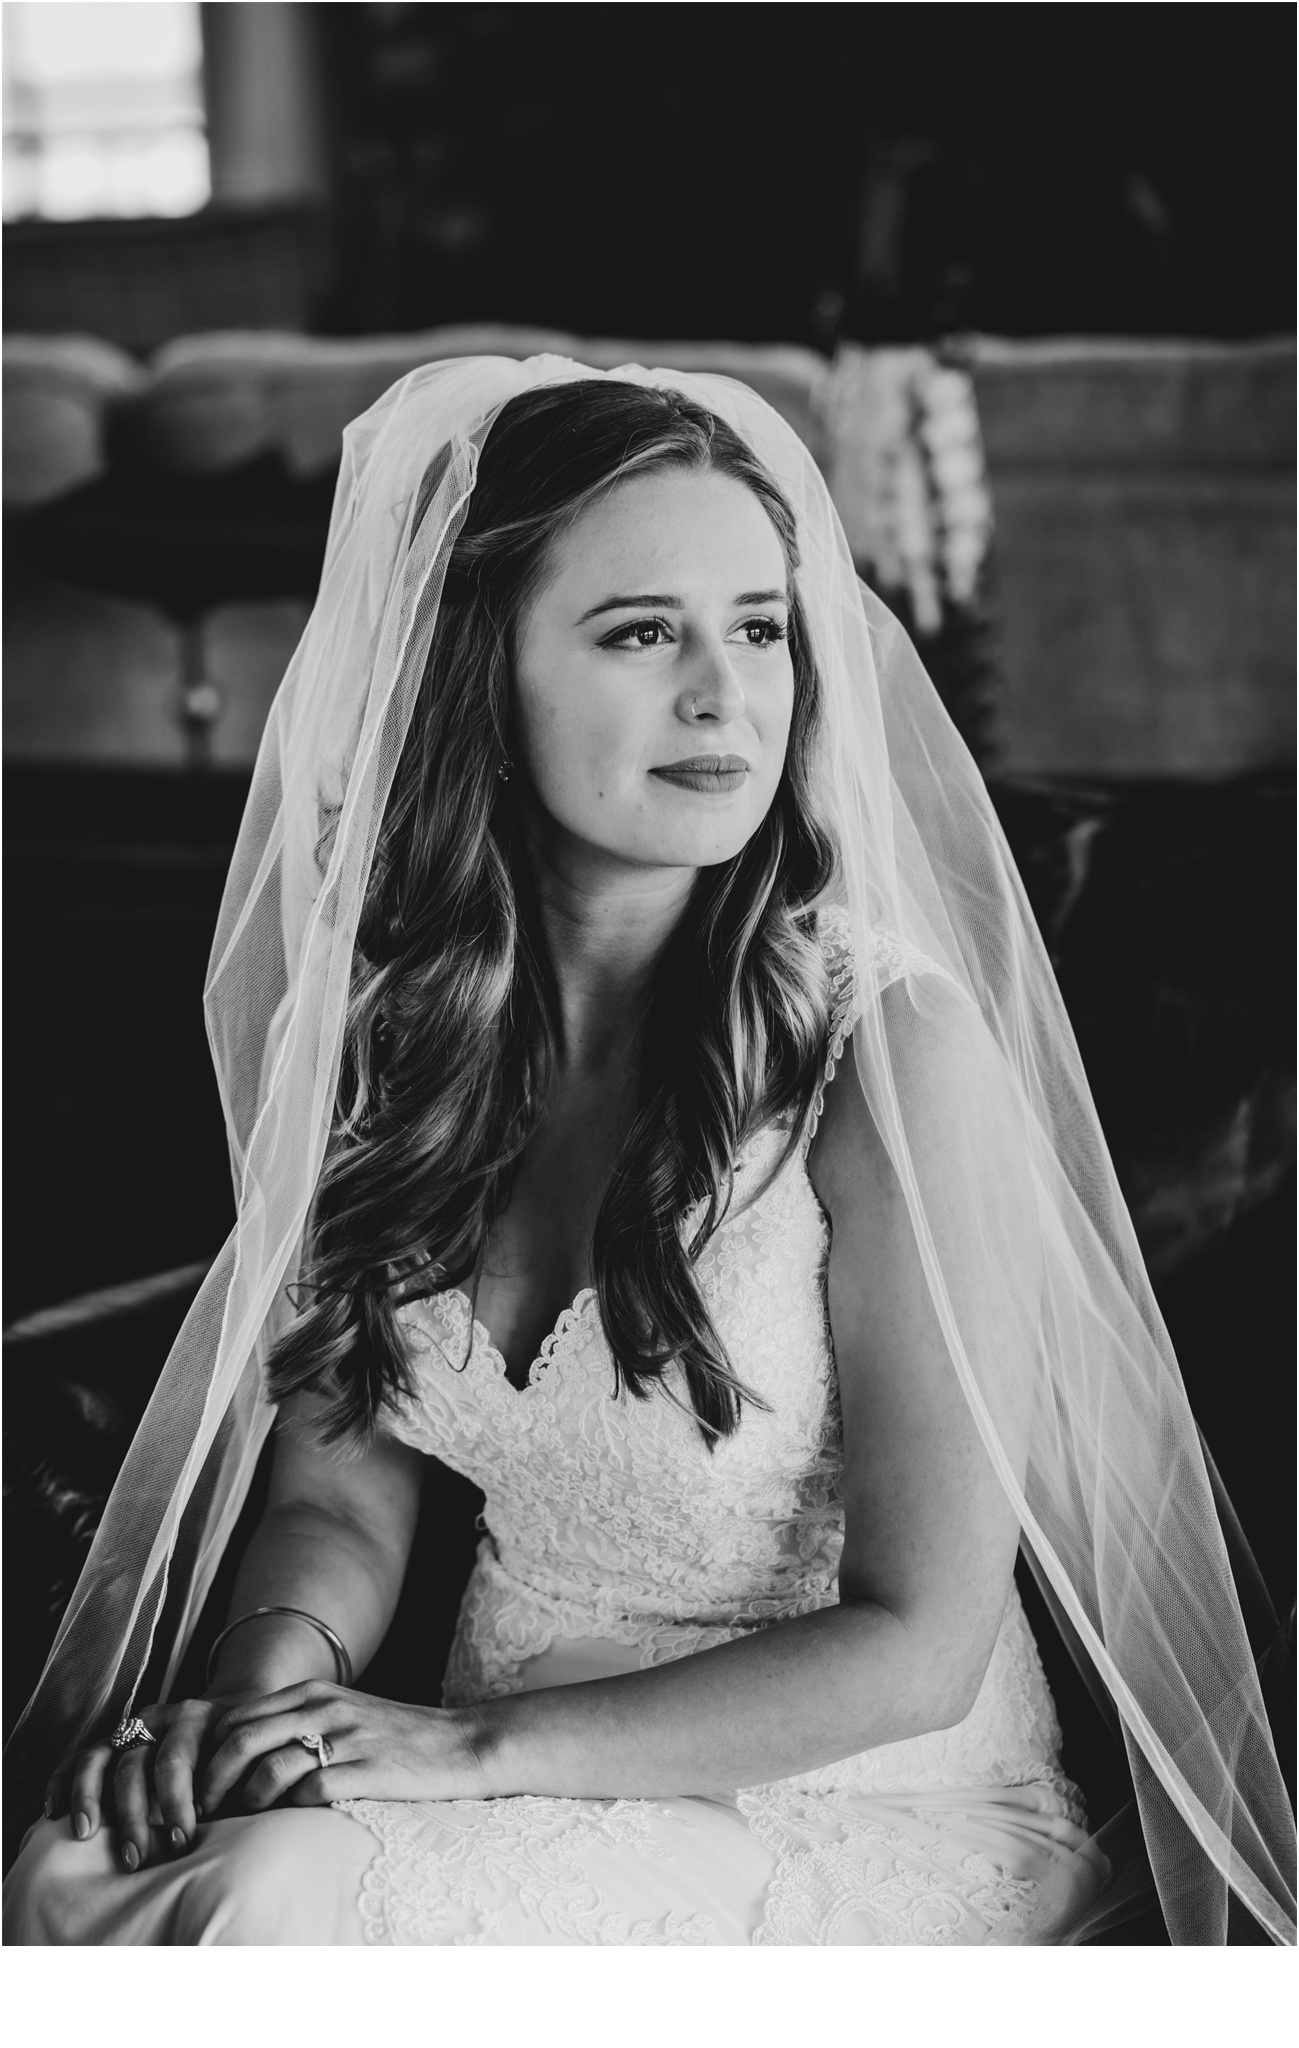 Rainey_Gregg_Photography_St._Simons_Island_Georgia_California_Wedding_Portrait_Photography_0770.jpg